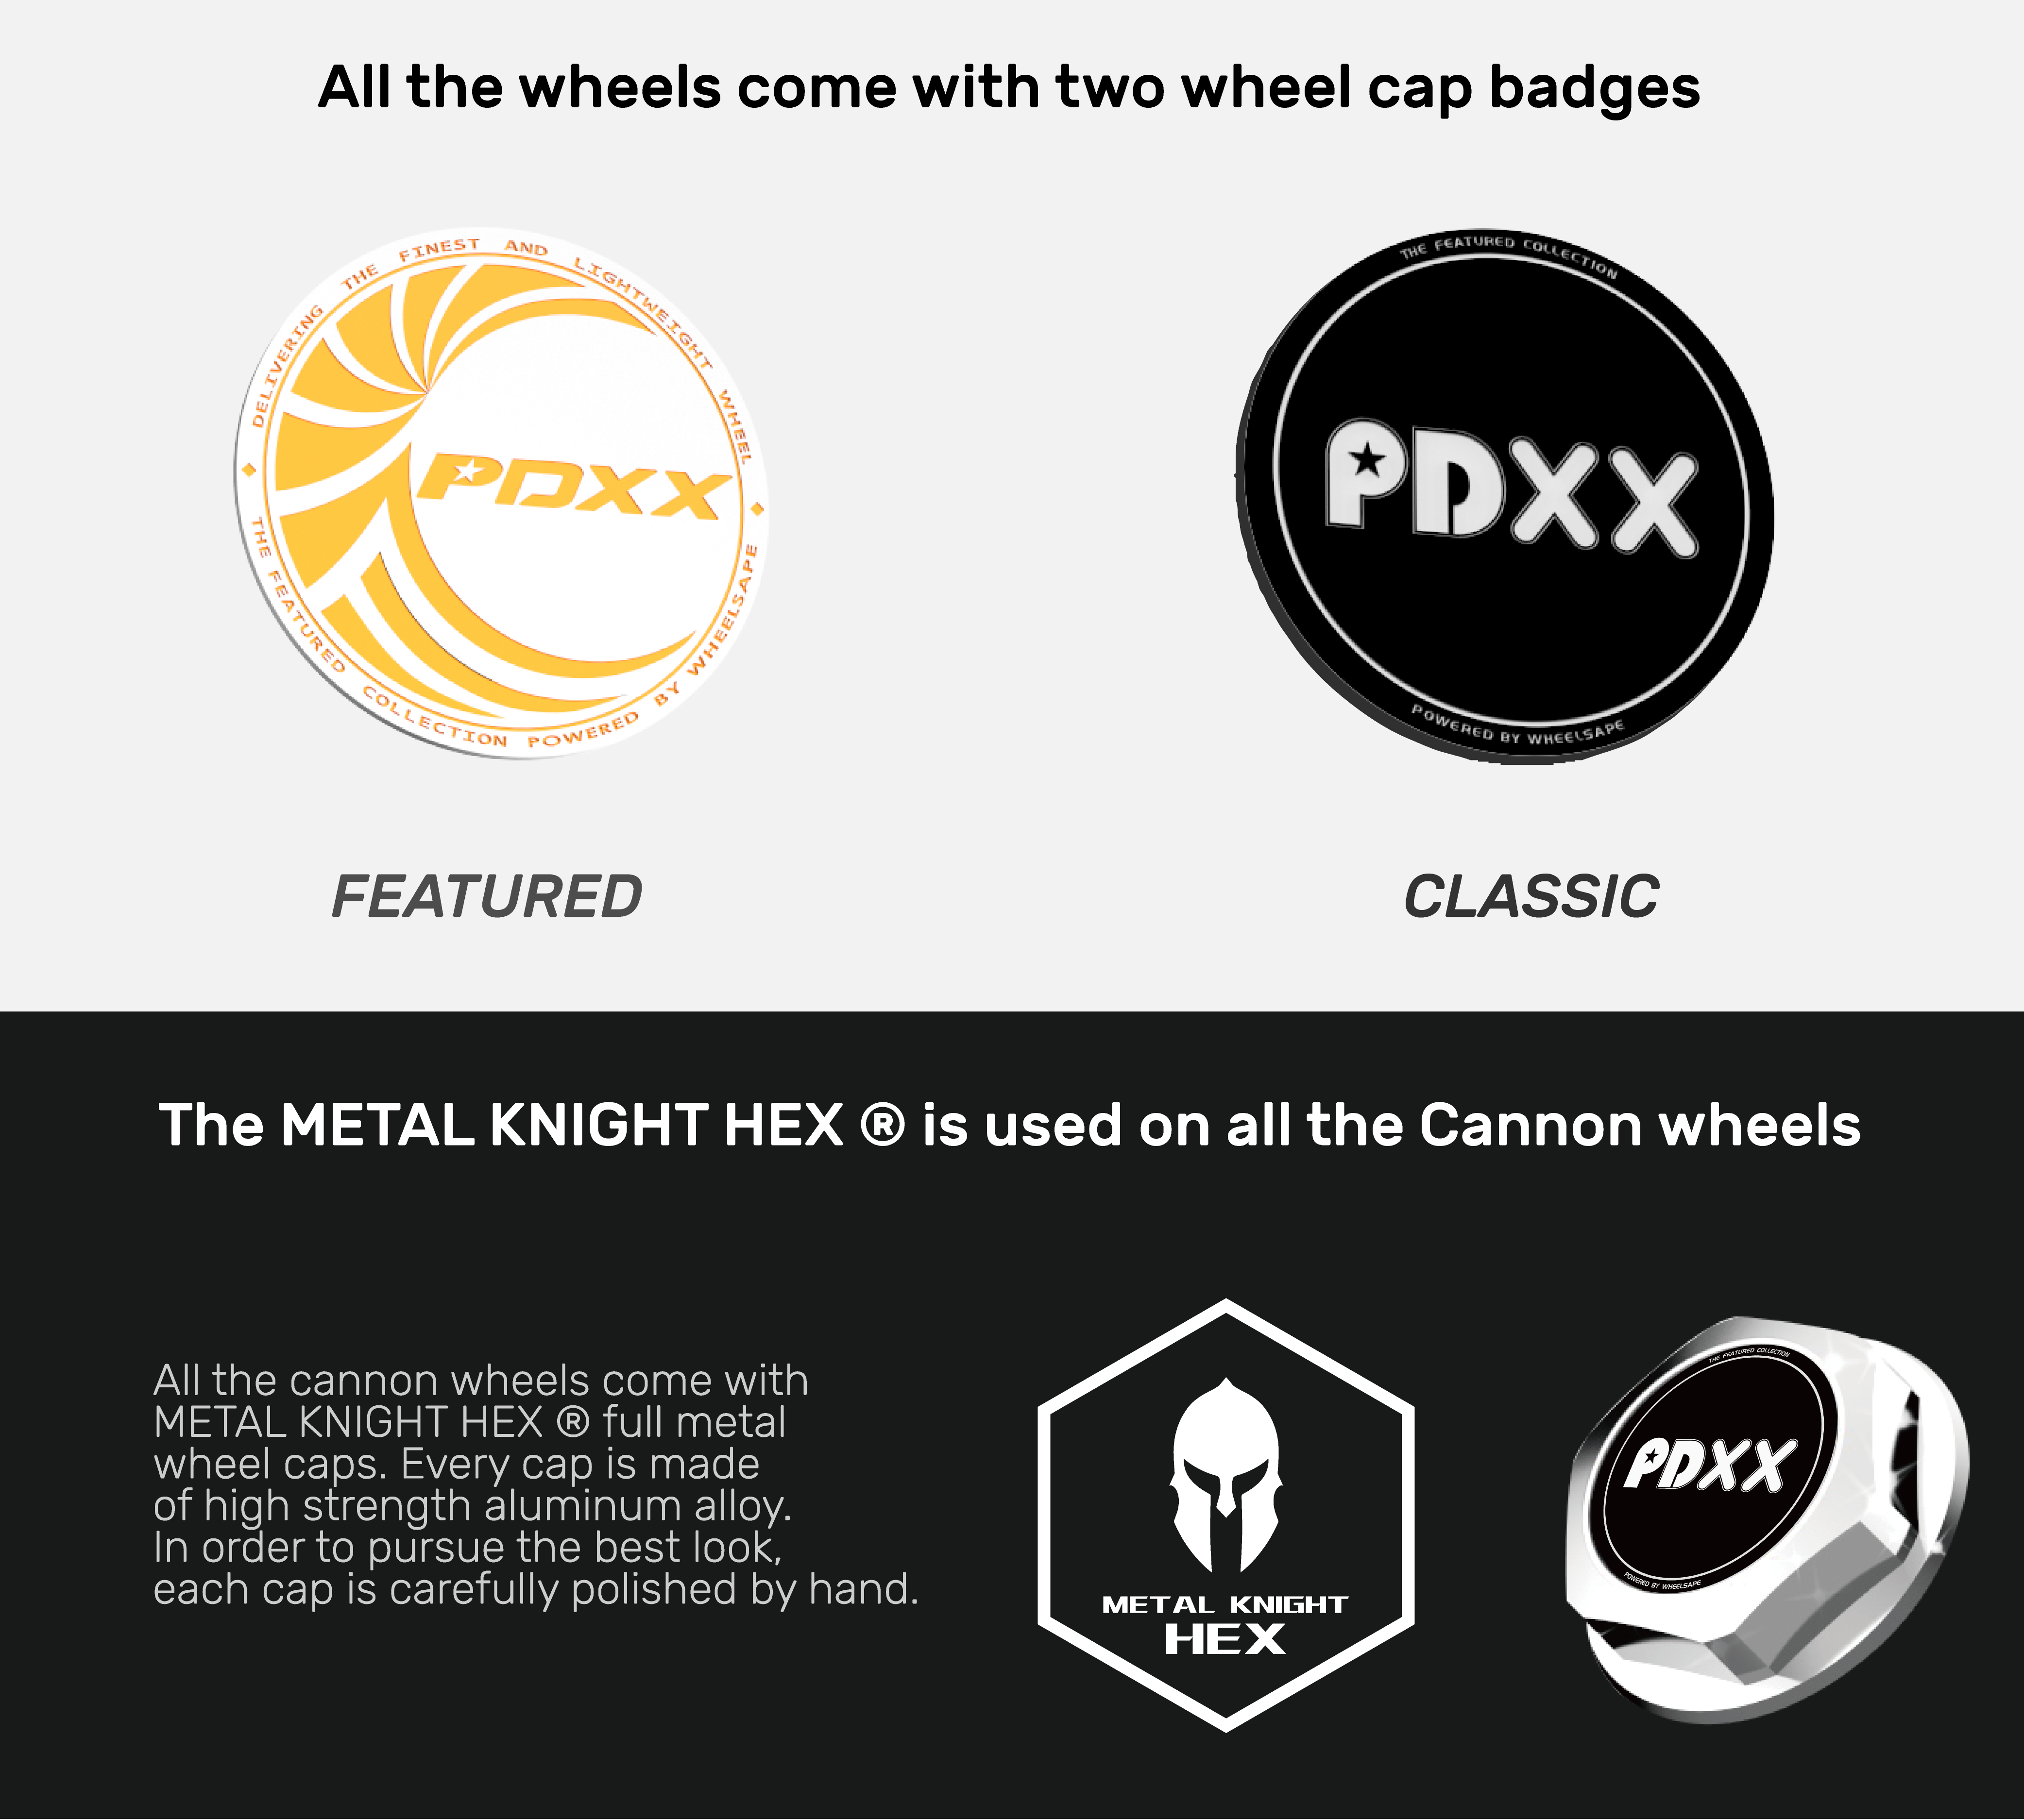 pdxx-metal-knig-hex-cannon-0a.png